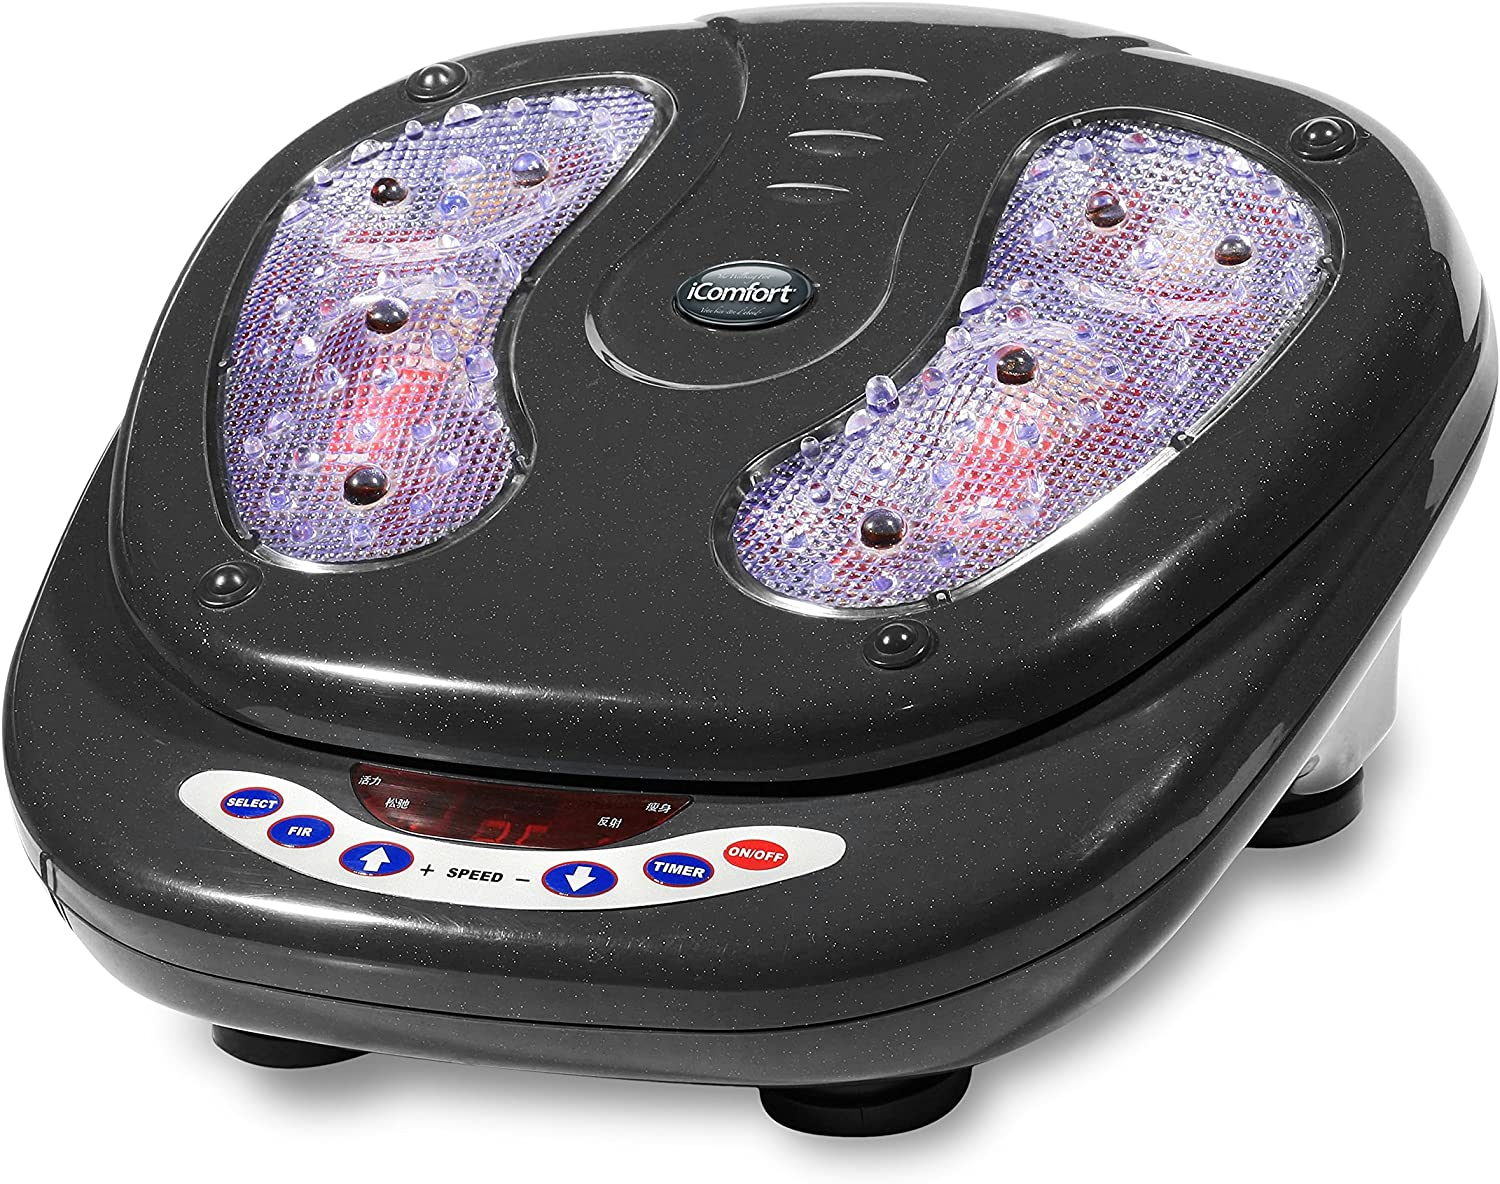 iComfort Vibration Foot Massager with Infrared Heat, Includes Wireless Remote Control, Black